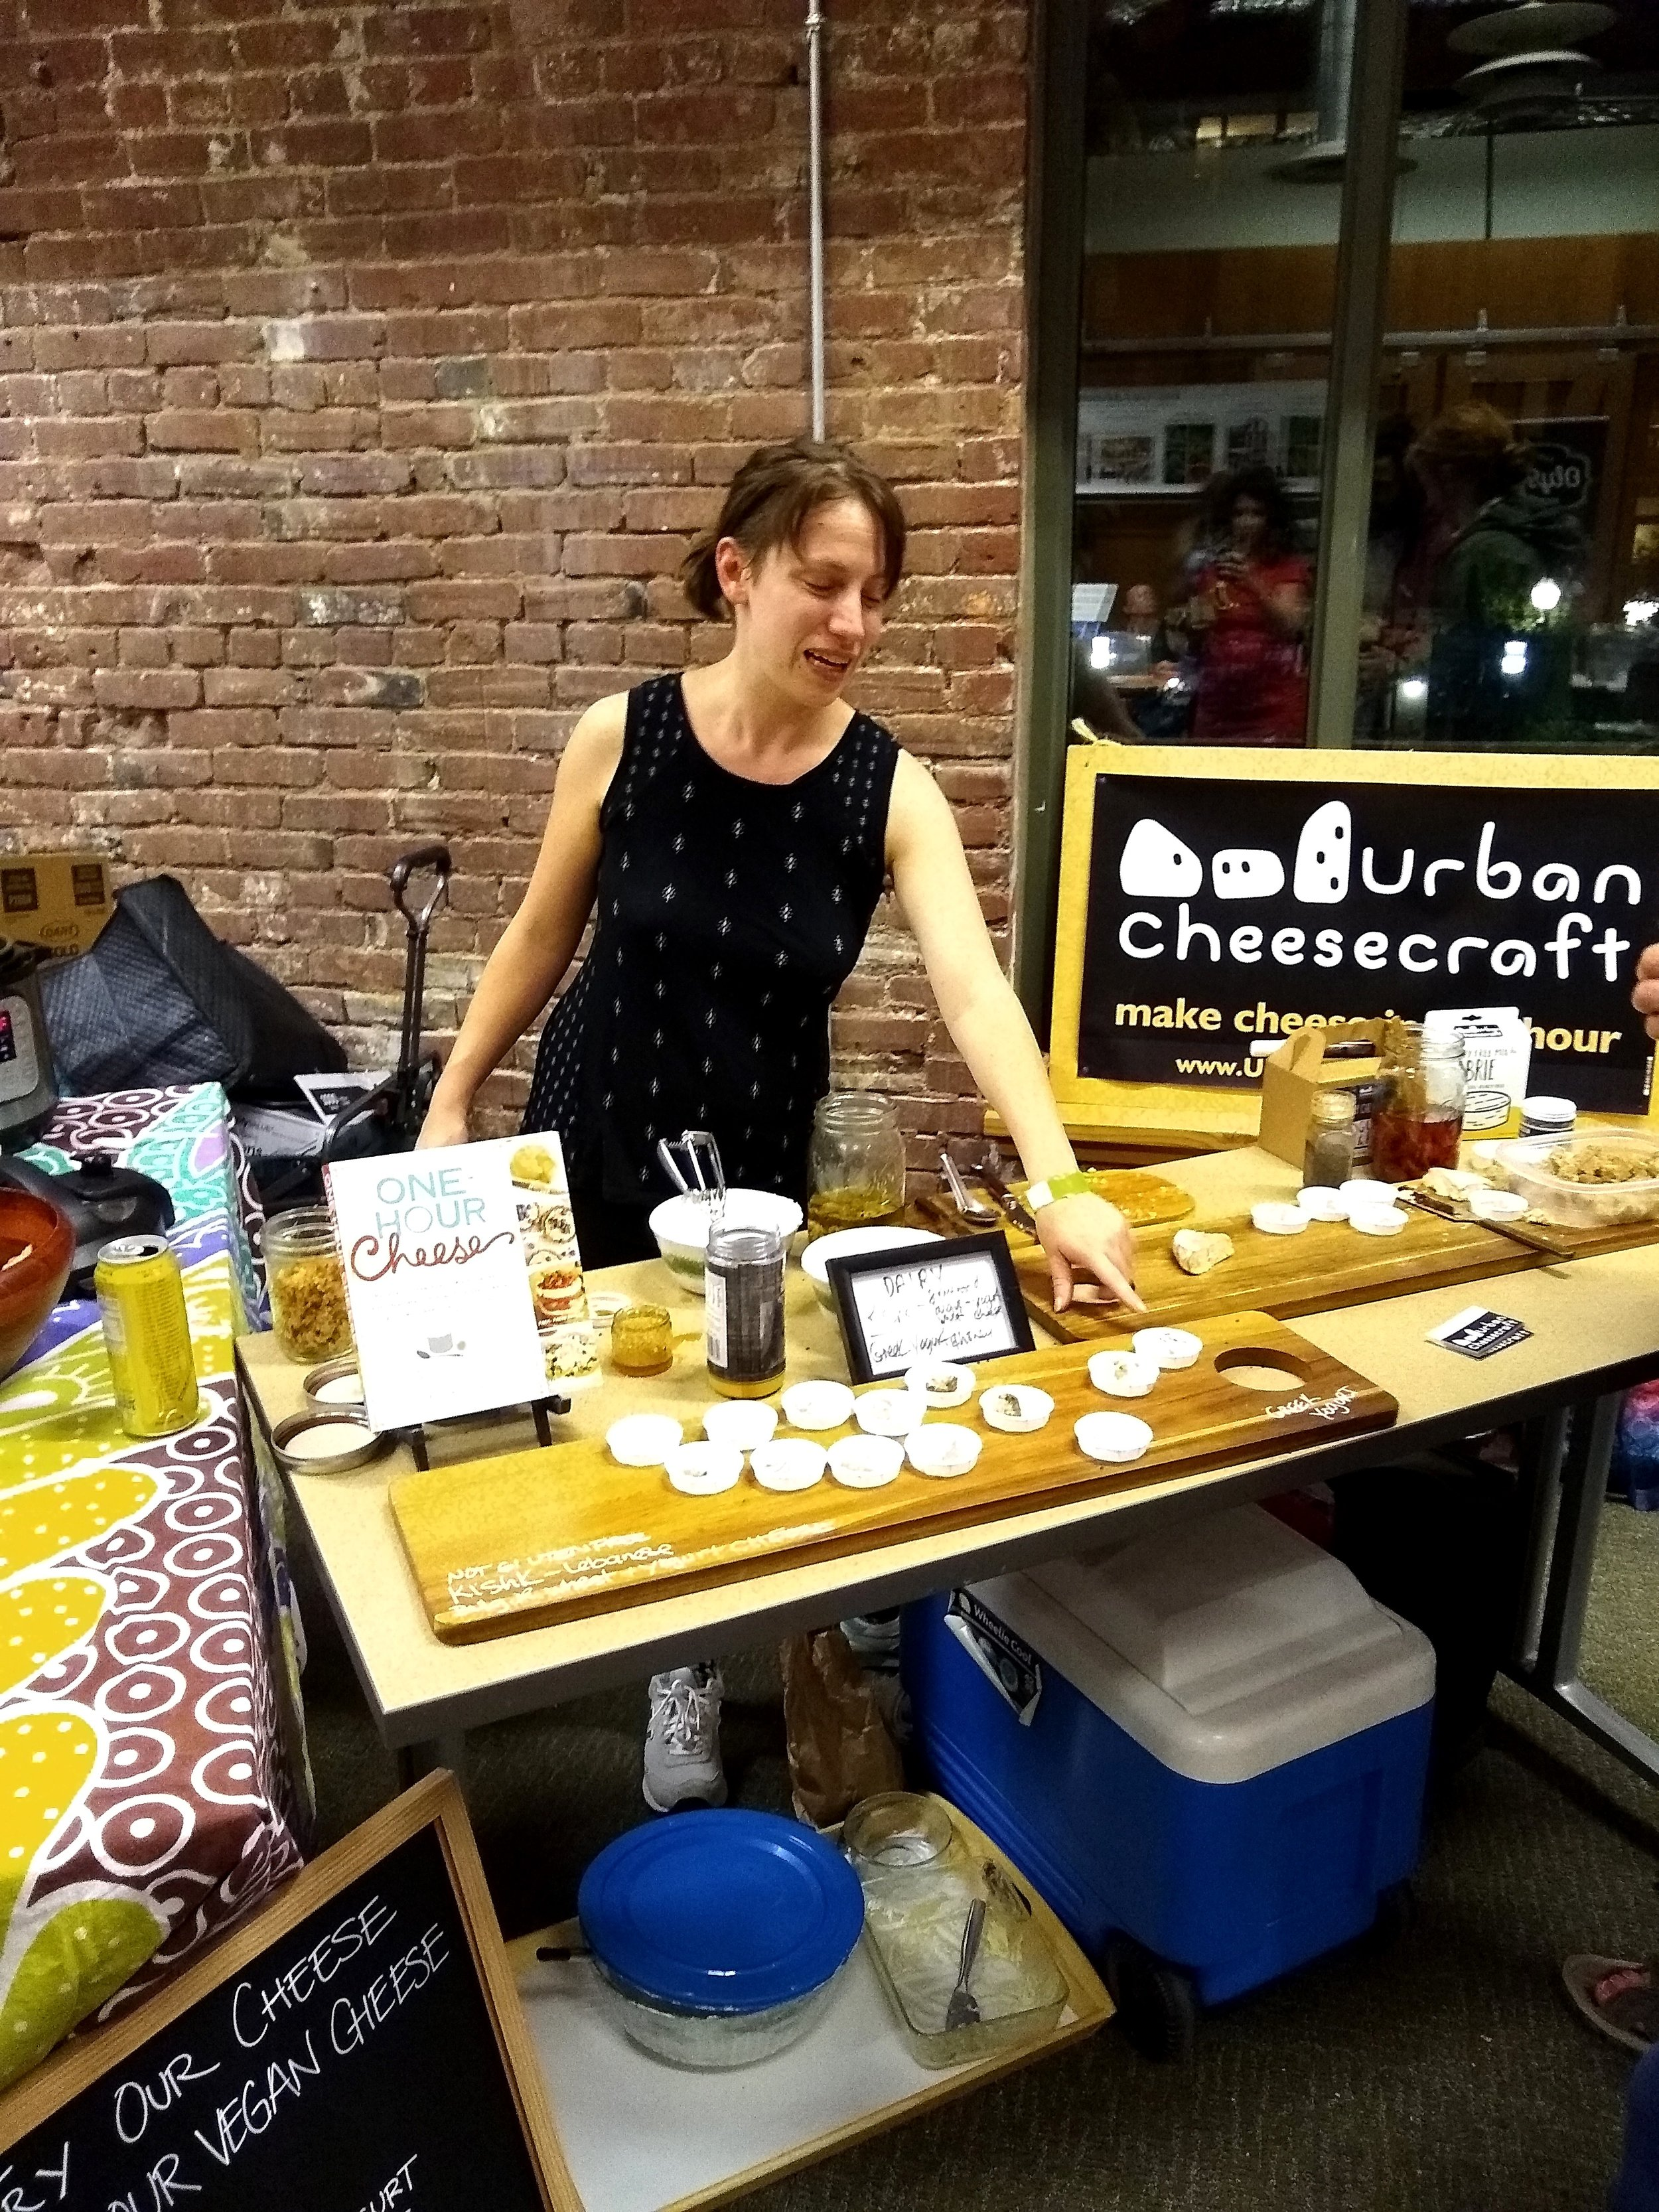 And Claudia's friend Gwynnie Vernon sampling all different Claudia/Urban Cheesecraft dairy and dairy-free deliciousness. Claudia's dairy-free cheese book comes out this February!! You can pre-order it from your favorite (hopefully indie) bookstore.